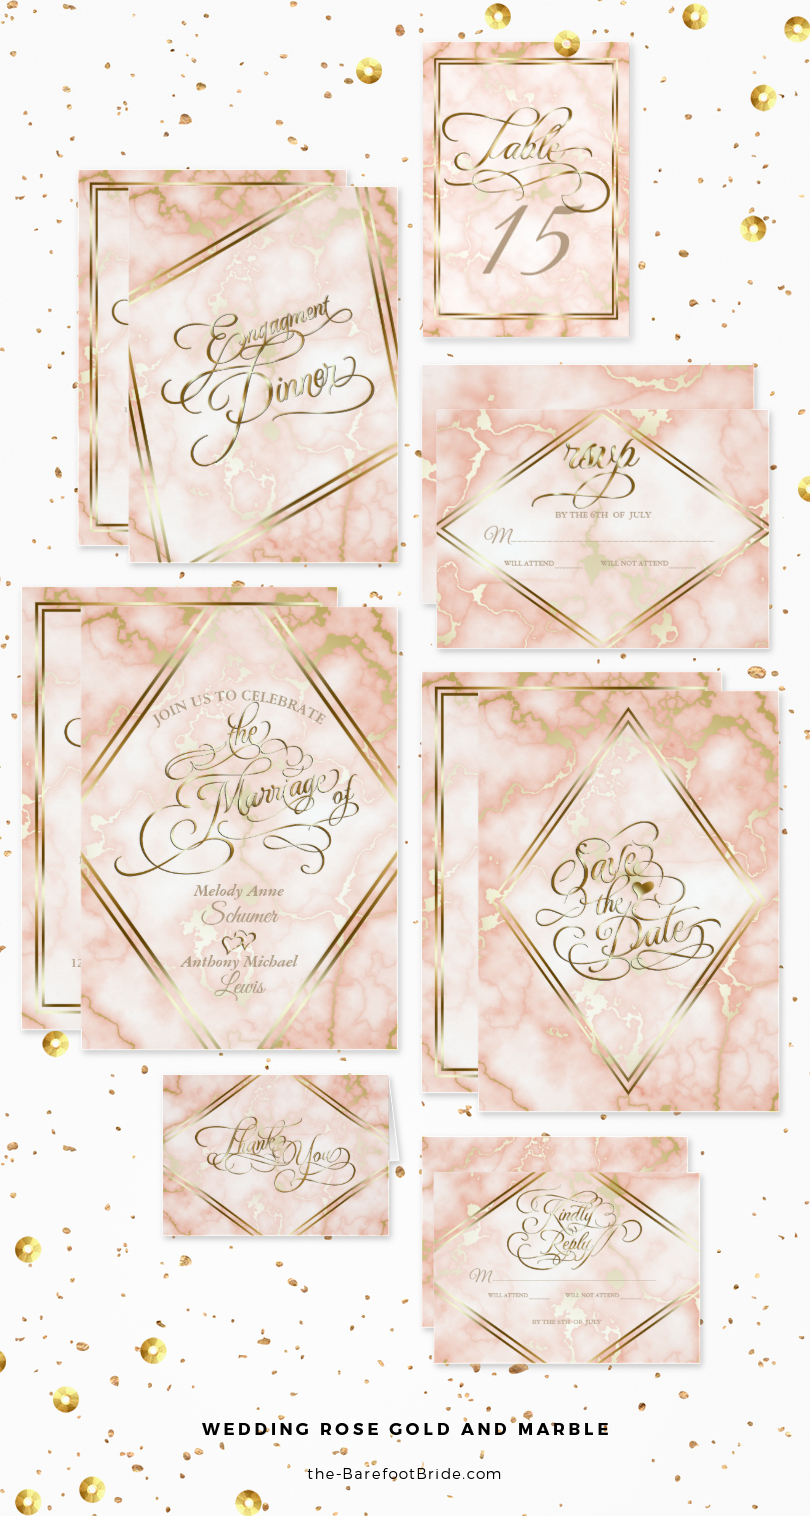 Rose Gold and Marble Wedding Invitation Suite